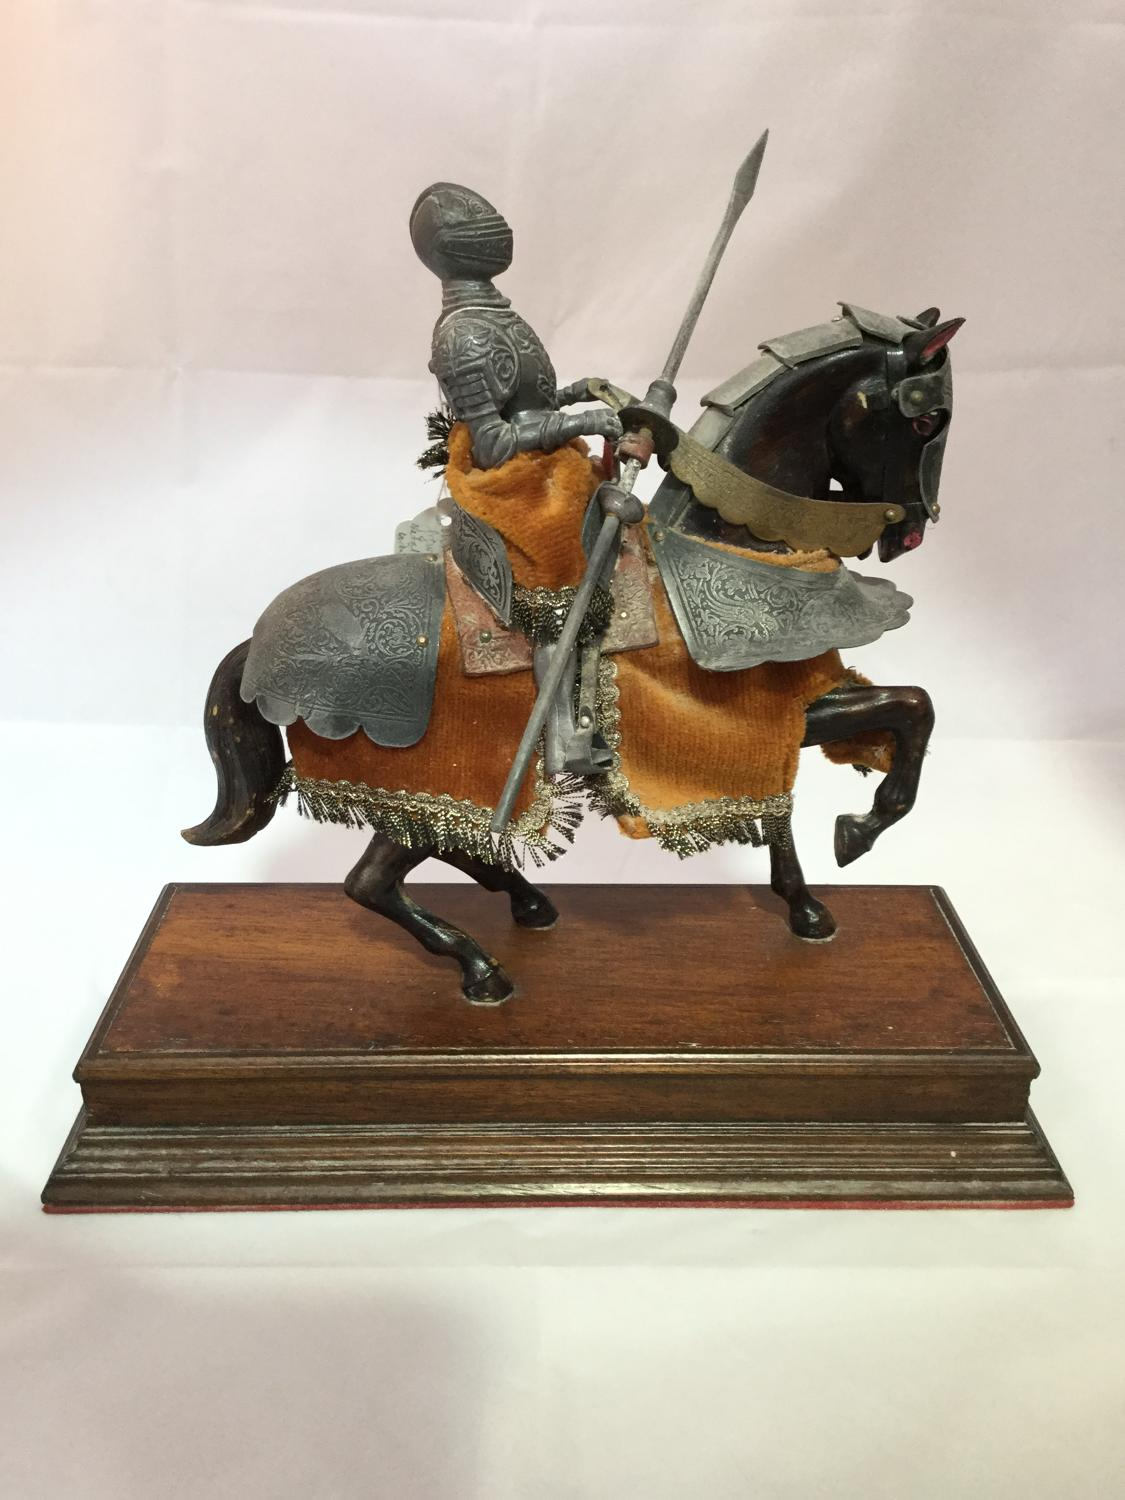 Vintage Knight on Horseback